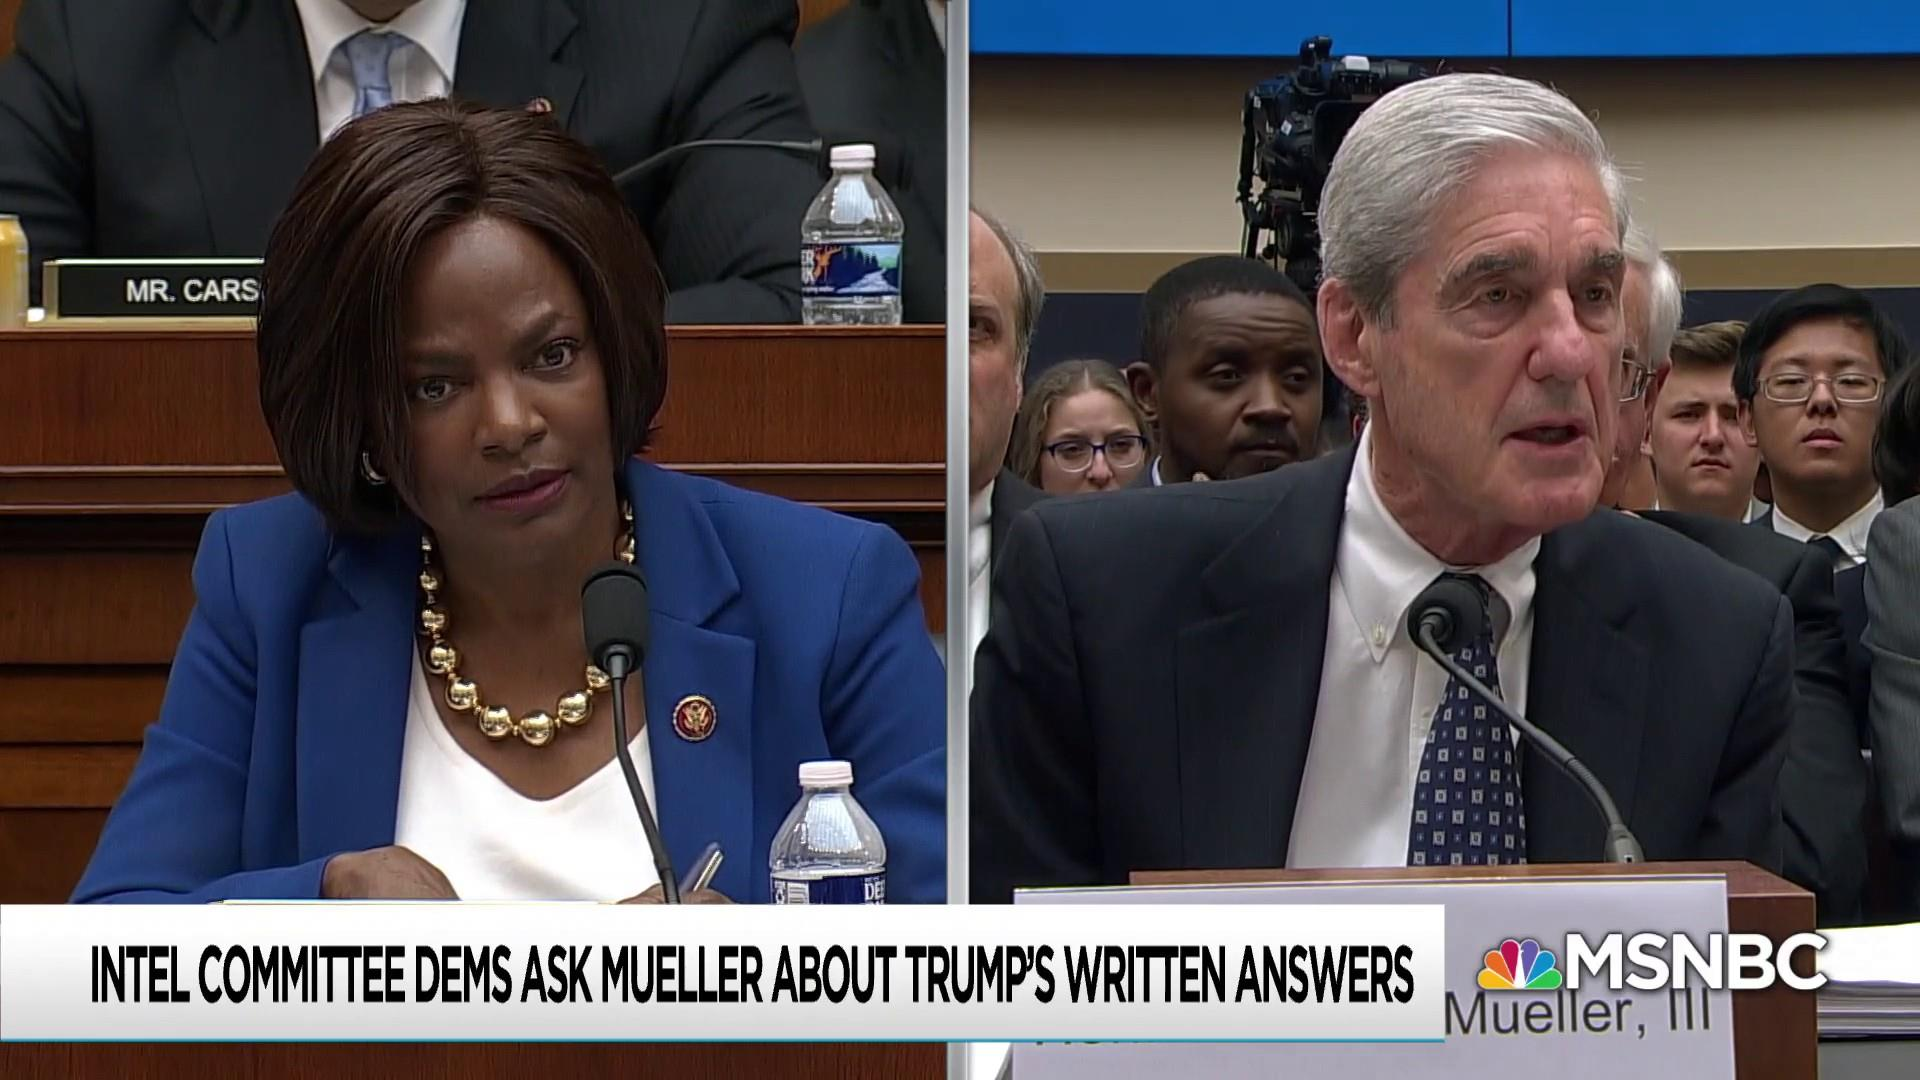 Mueller: Trump wasn't always being truthful in his answers